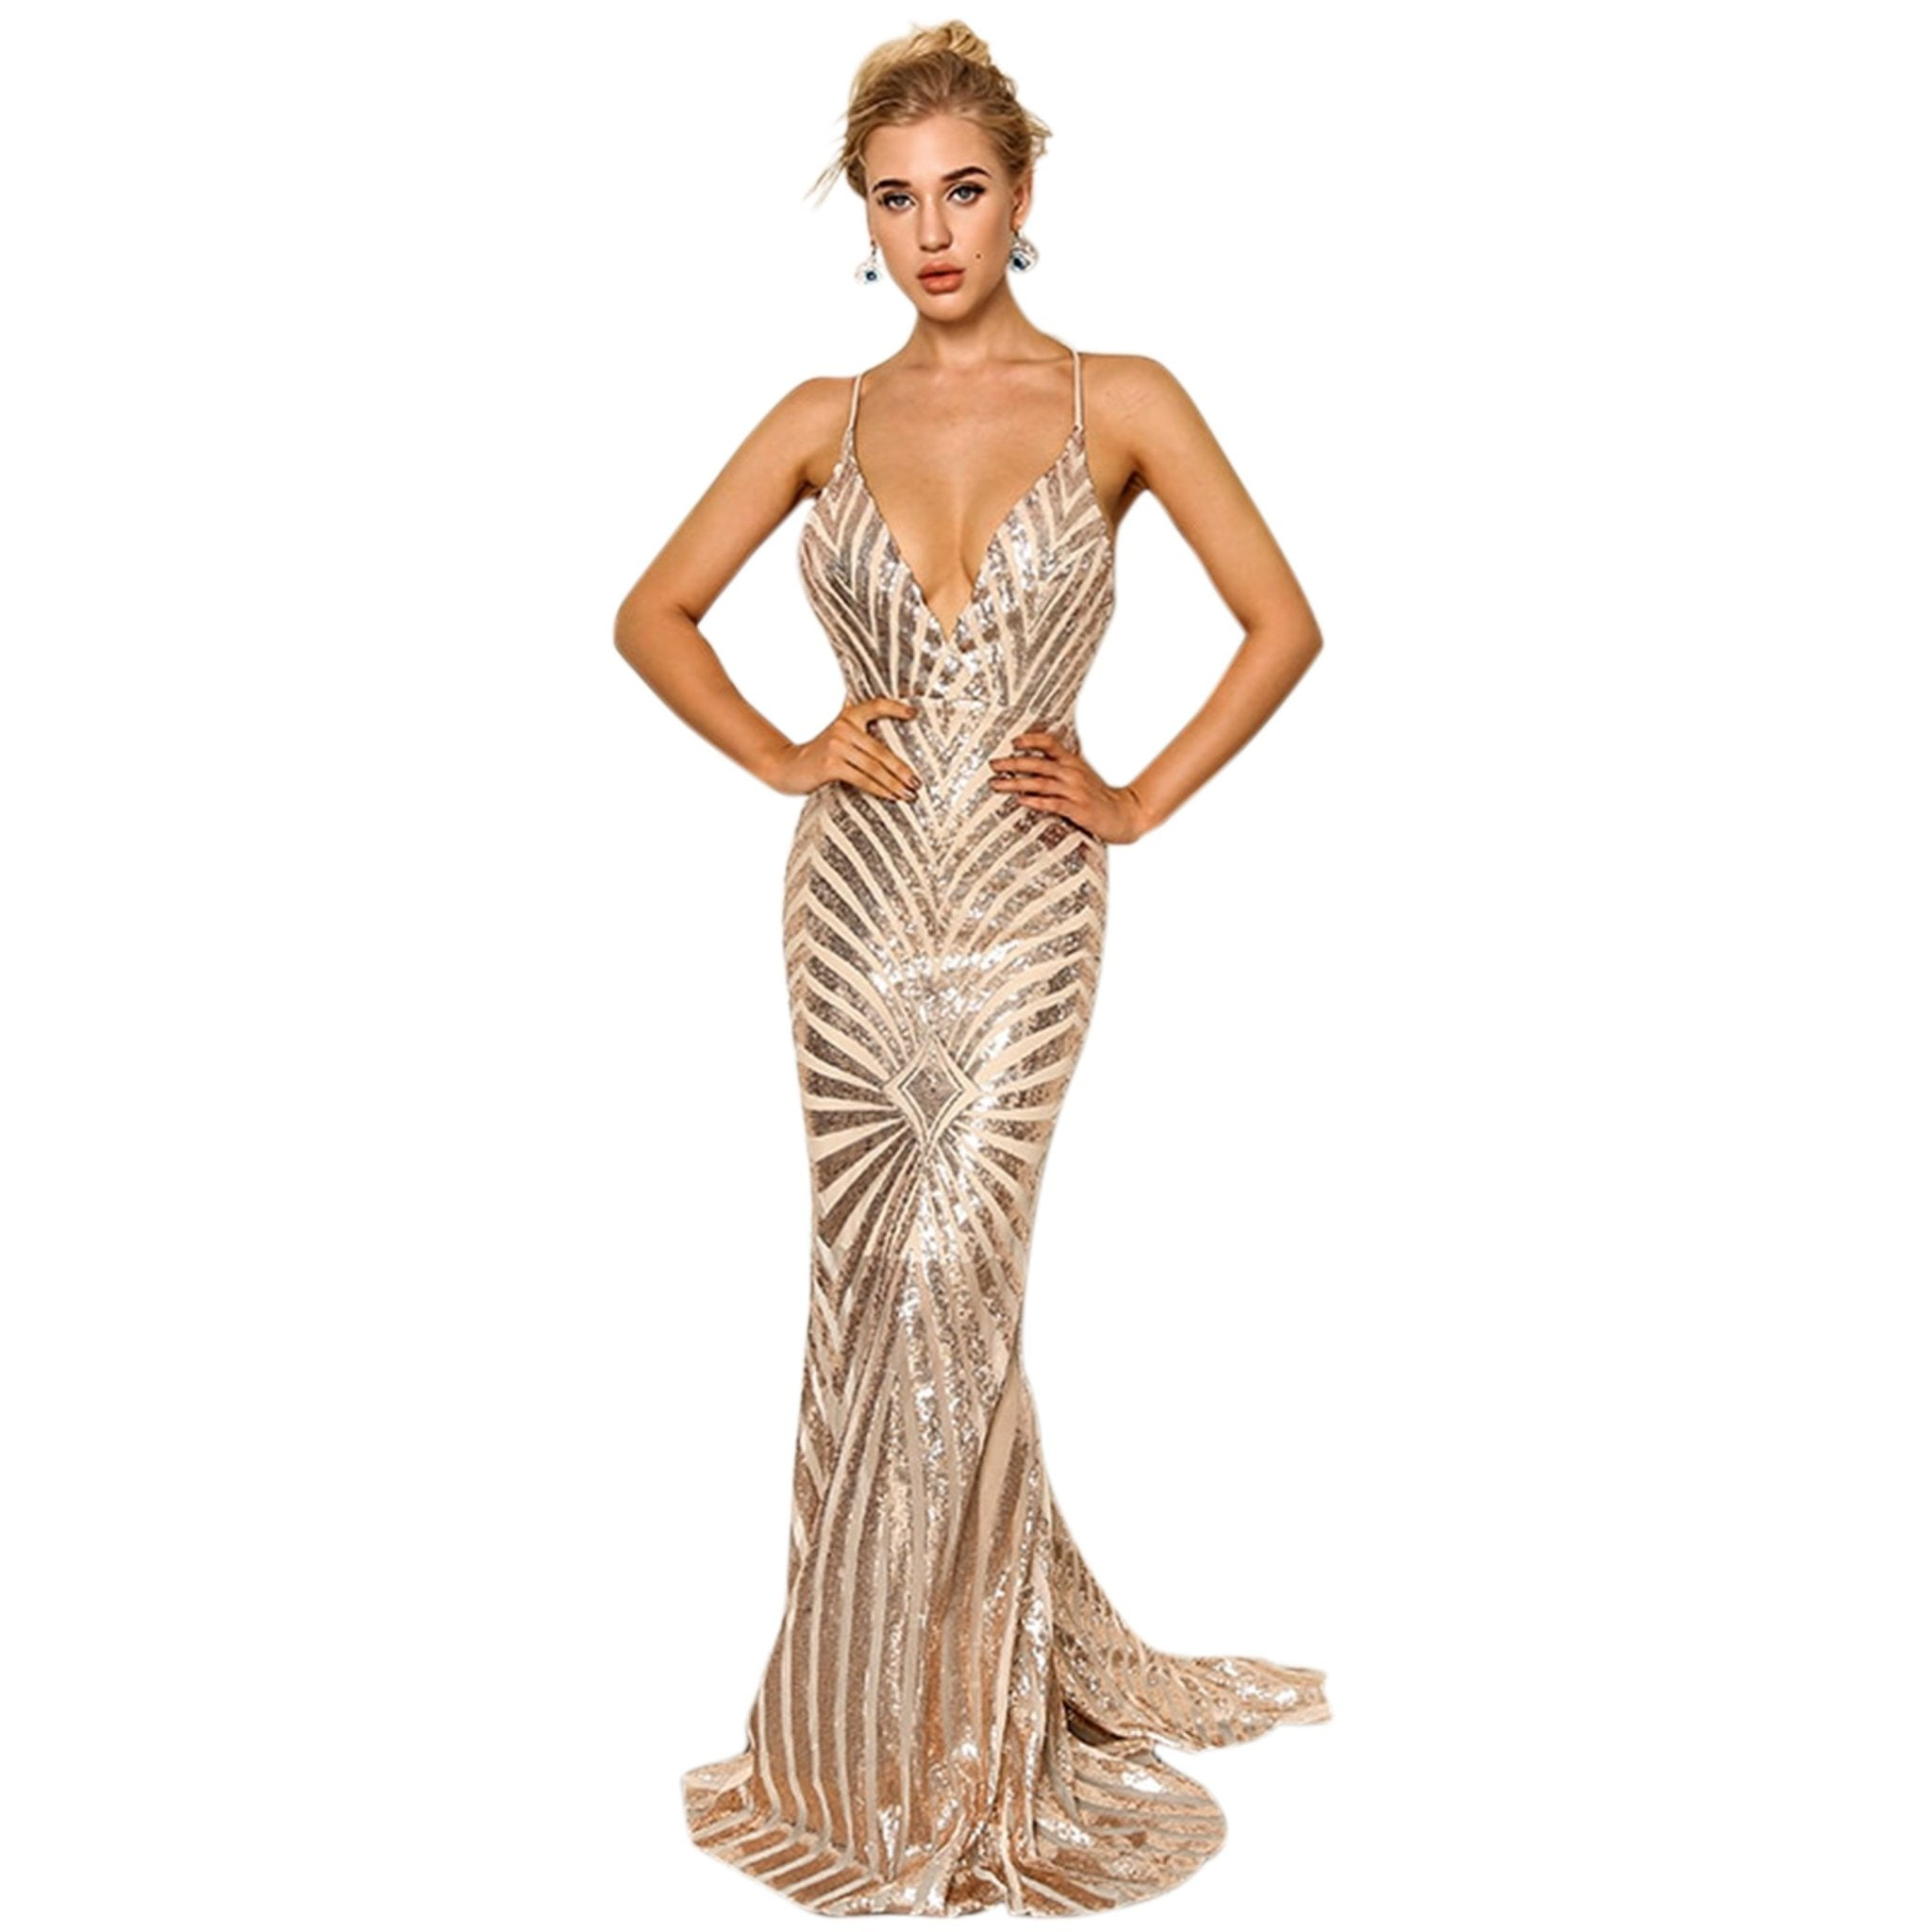 KERENZA | Rose Gold Sequin Evening Dress - Formal Dresses Envious Bridal & Formal